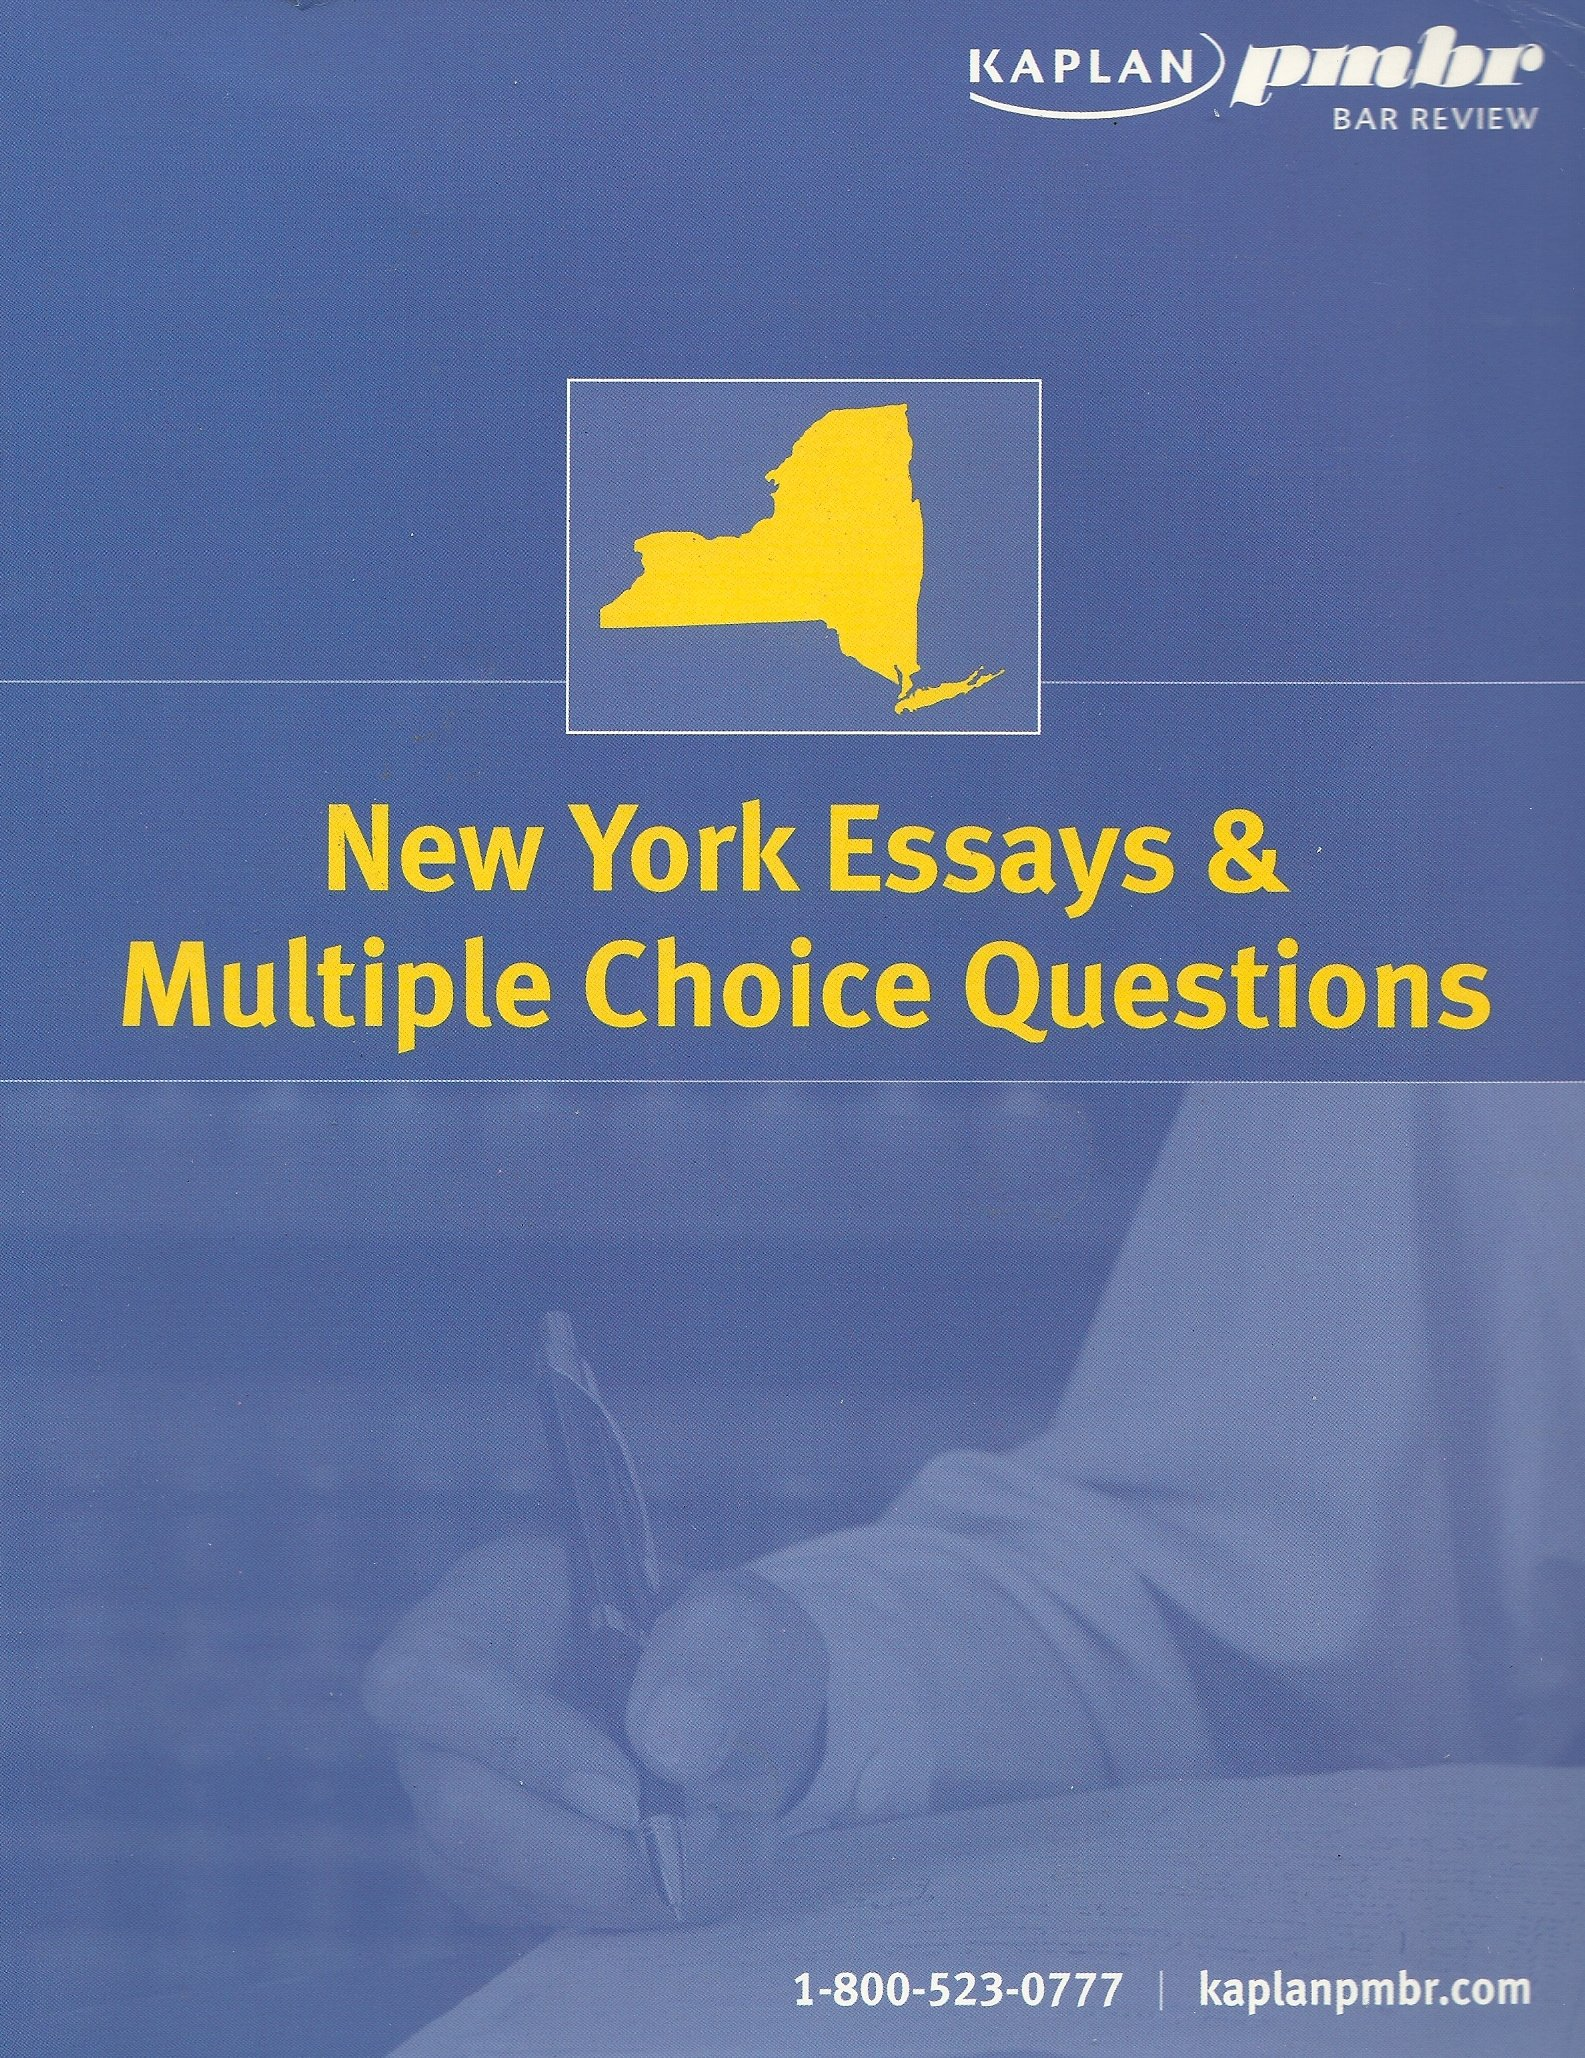 new york essays multiple choice questions general bar review new york essays multiple choice questions general bar review com books